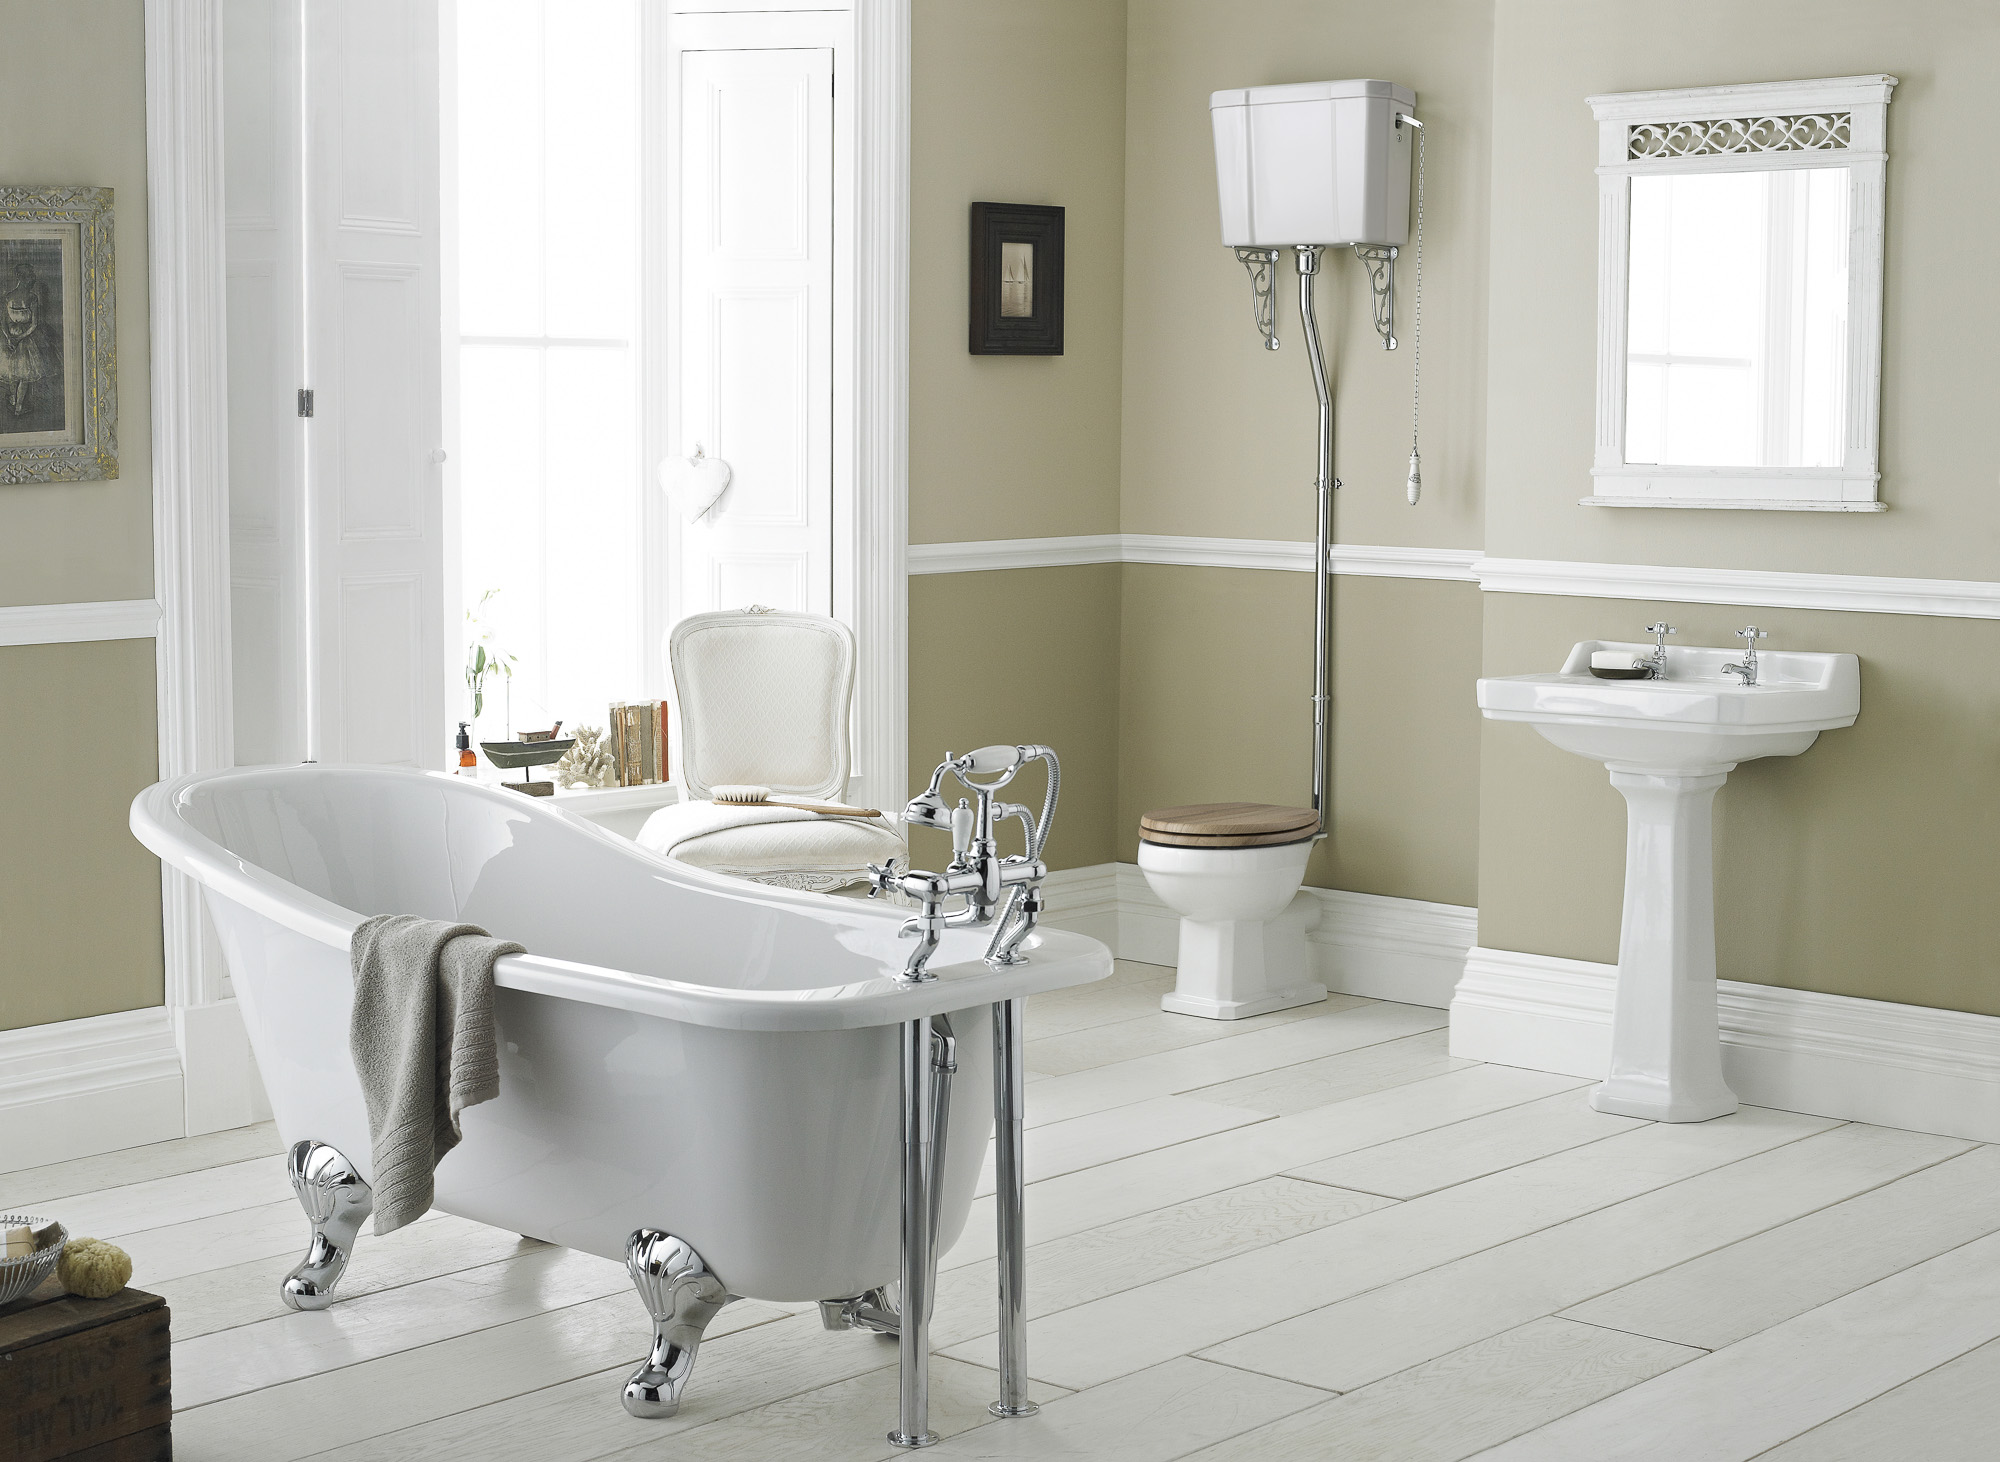 Add A Classic Look To Your Bathroom With The New